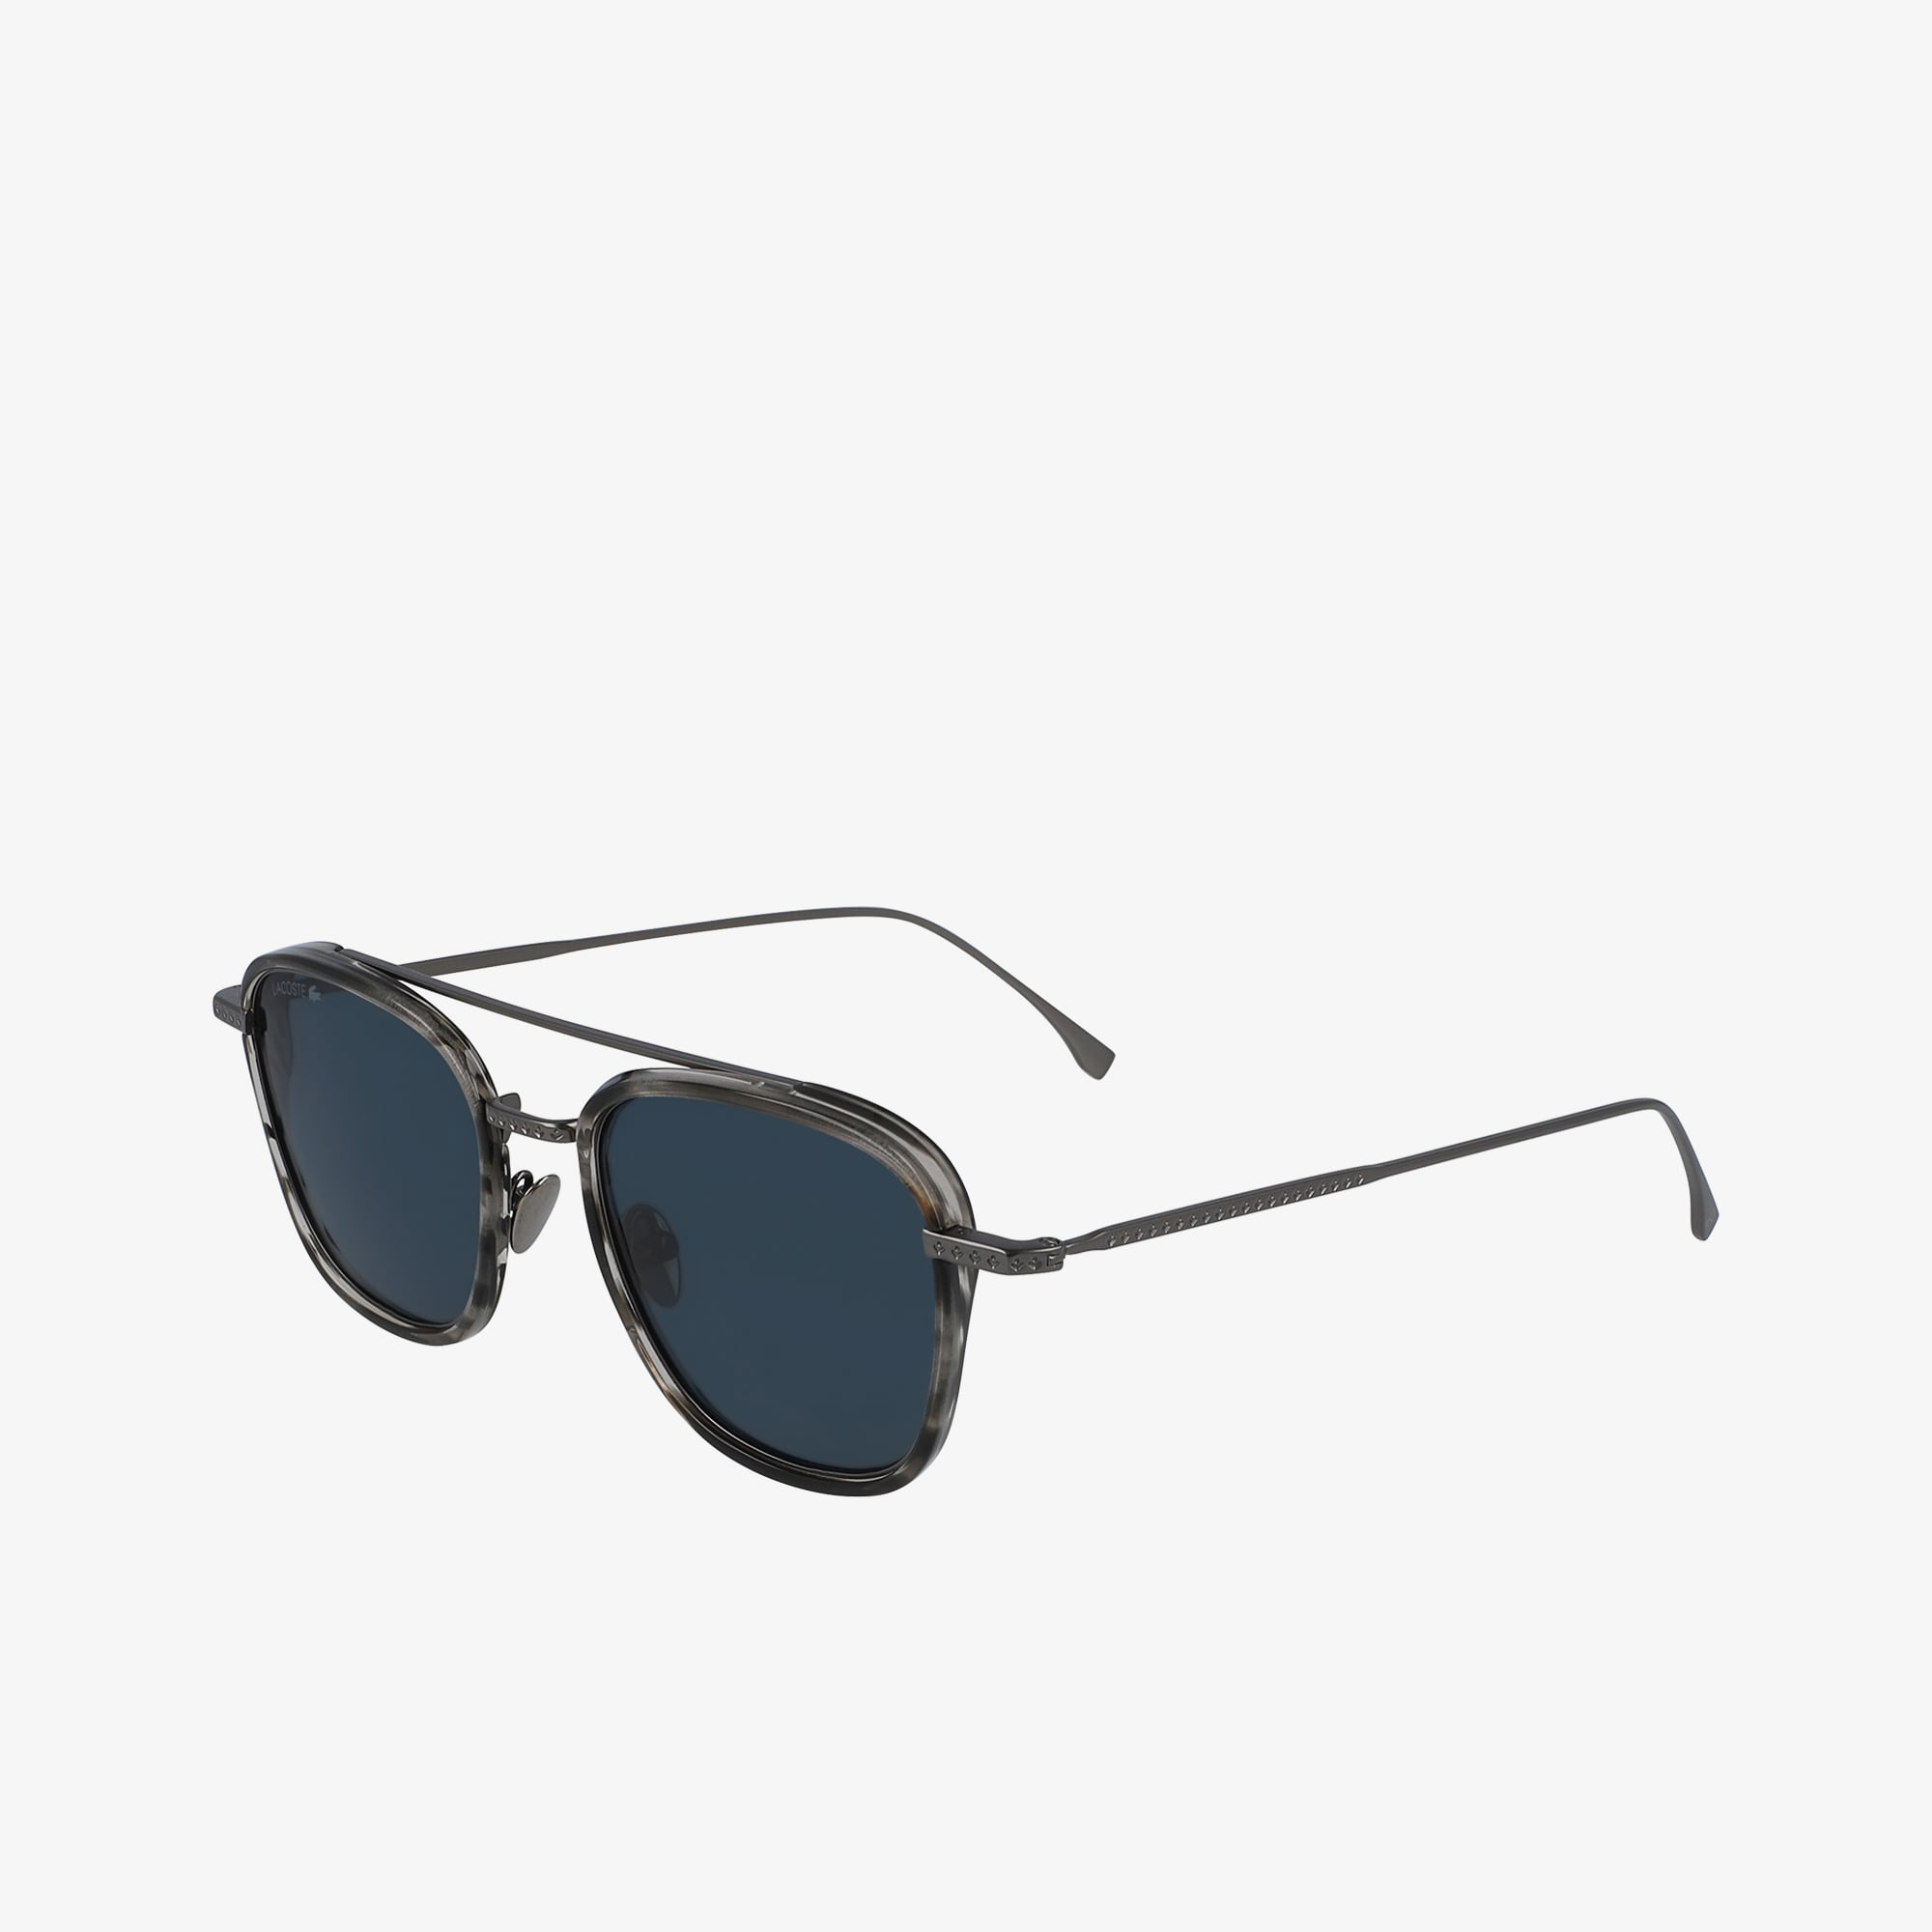 Modified Rectangle Metal Novak Djokovic Capsule Sunglasses